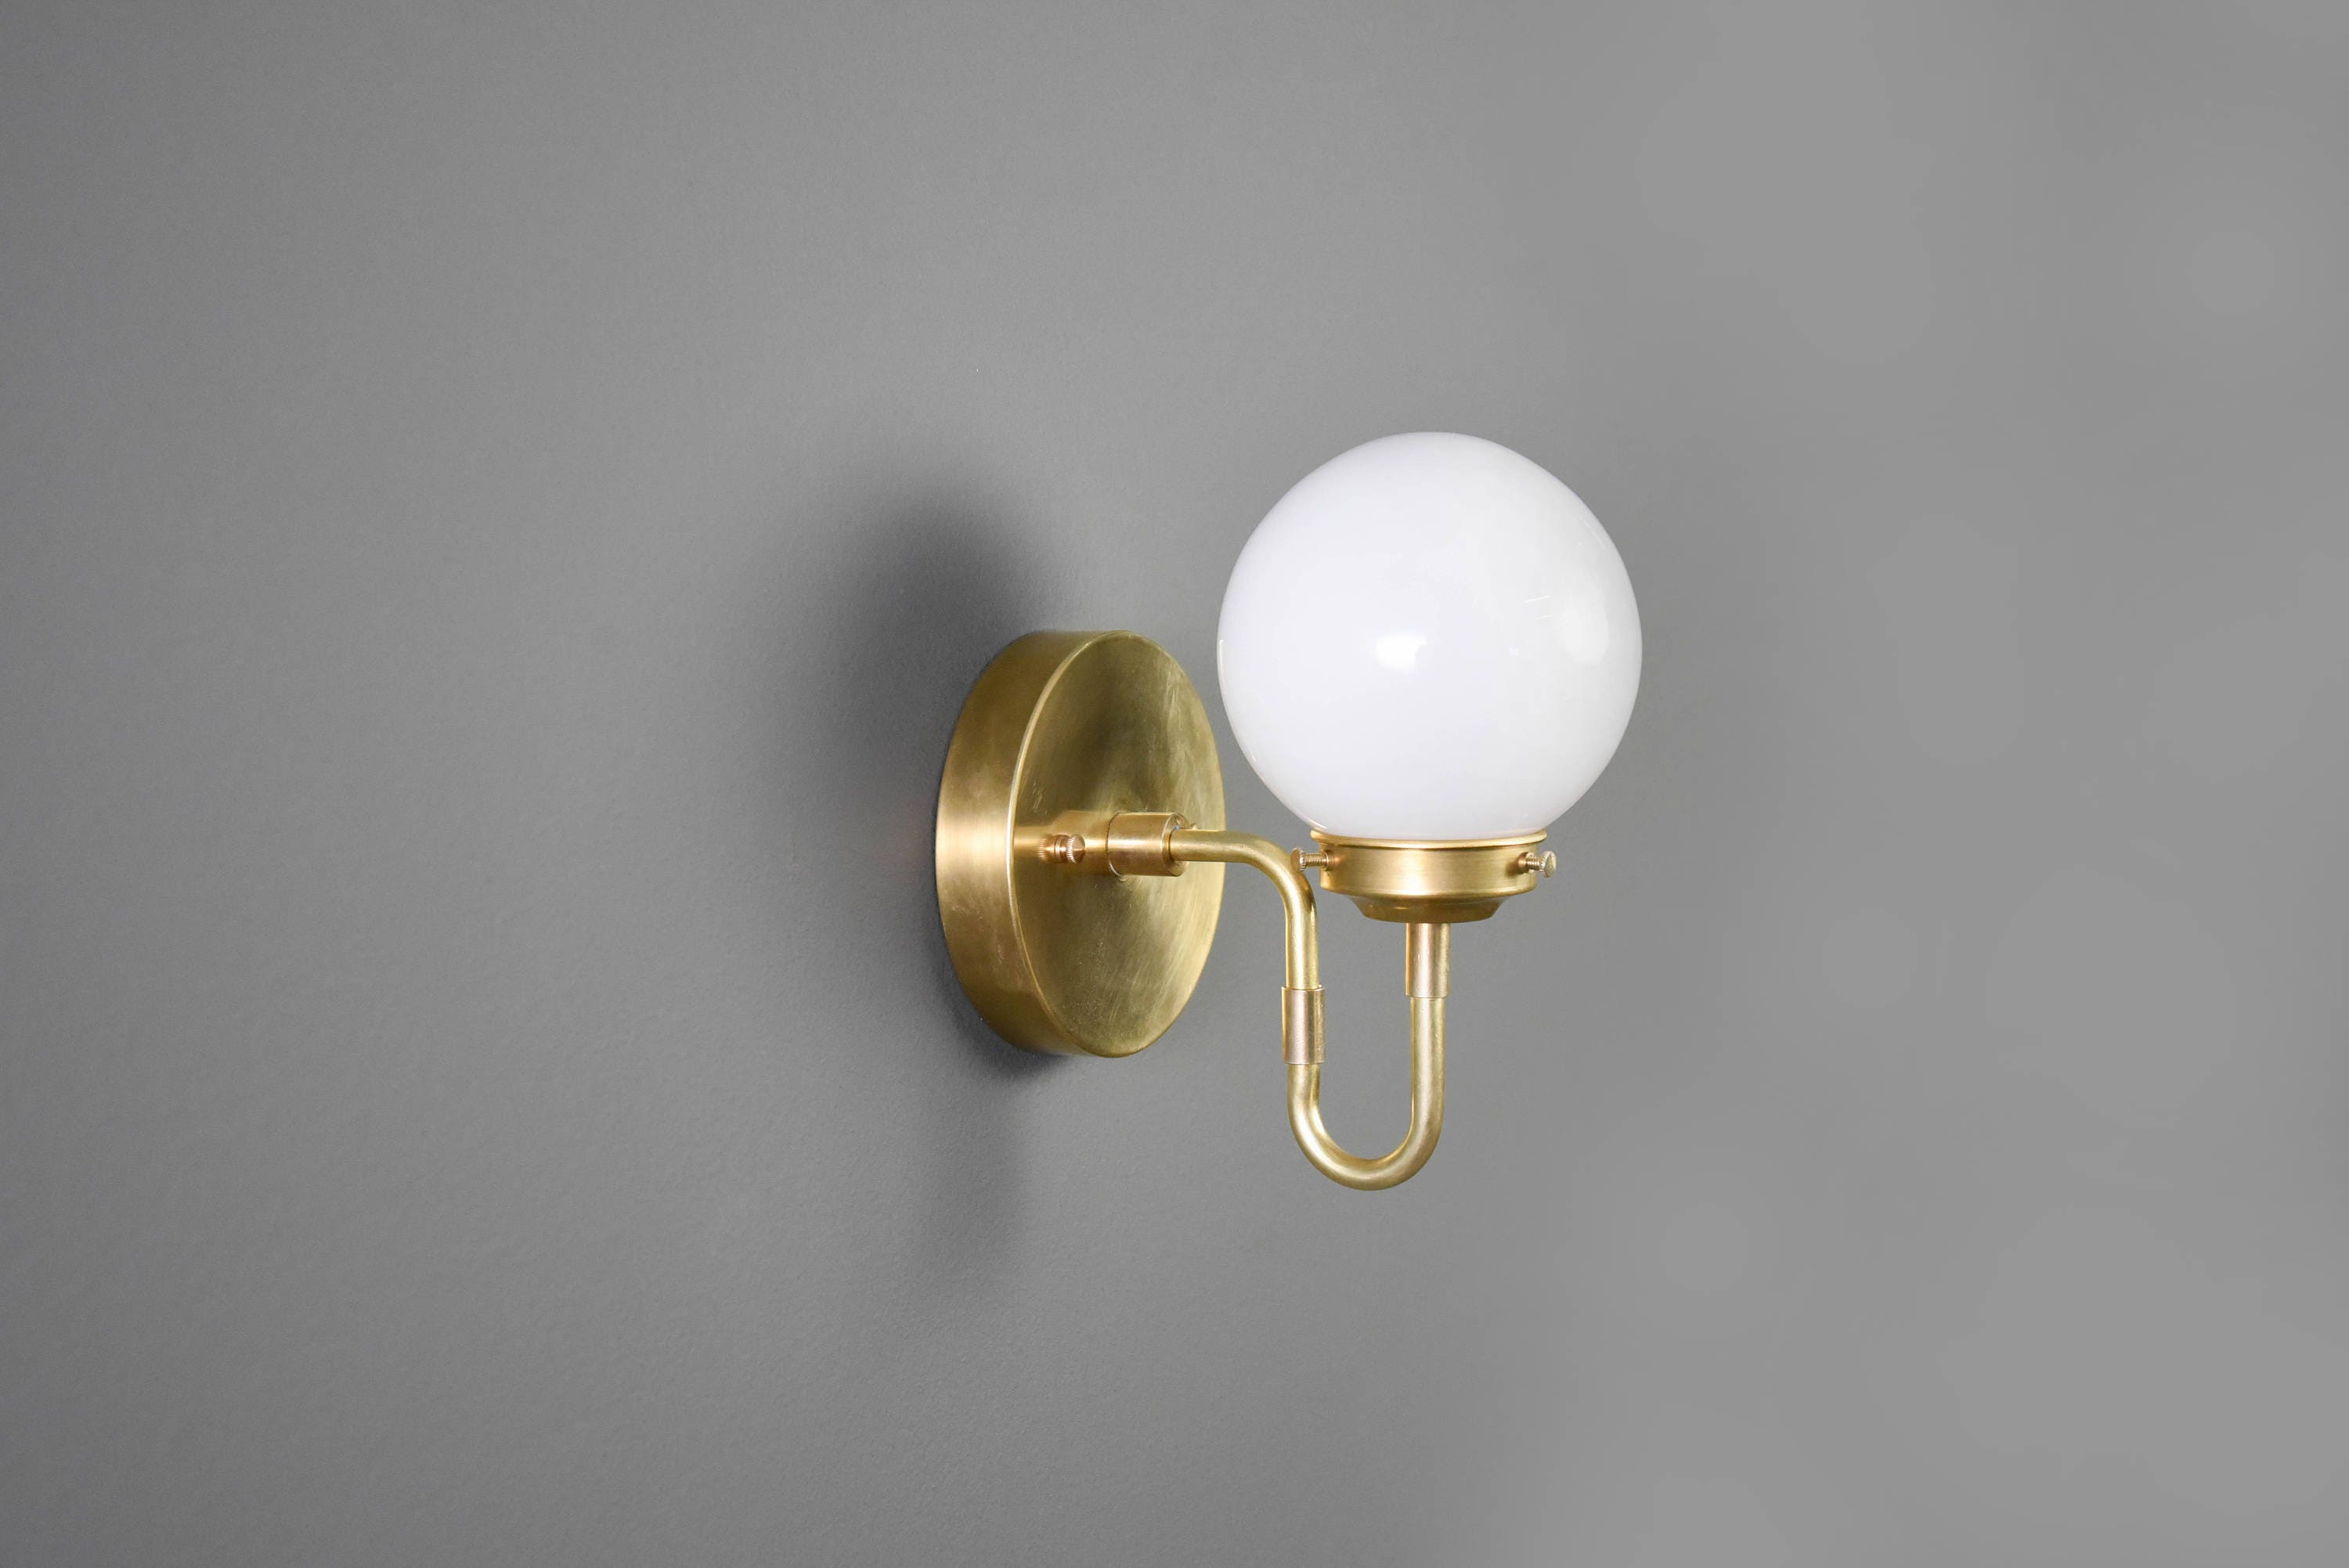 bare listing modern industrial light sconce brass bathroom vanity lamp gold bulb raw il fullxfull wall art